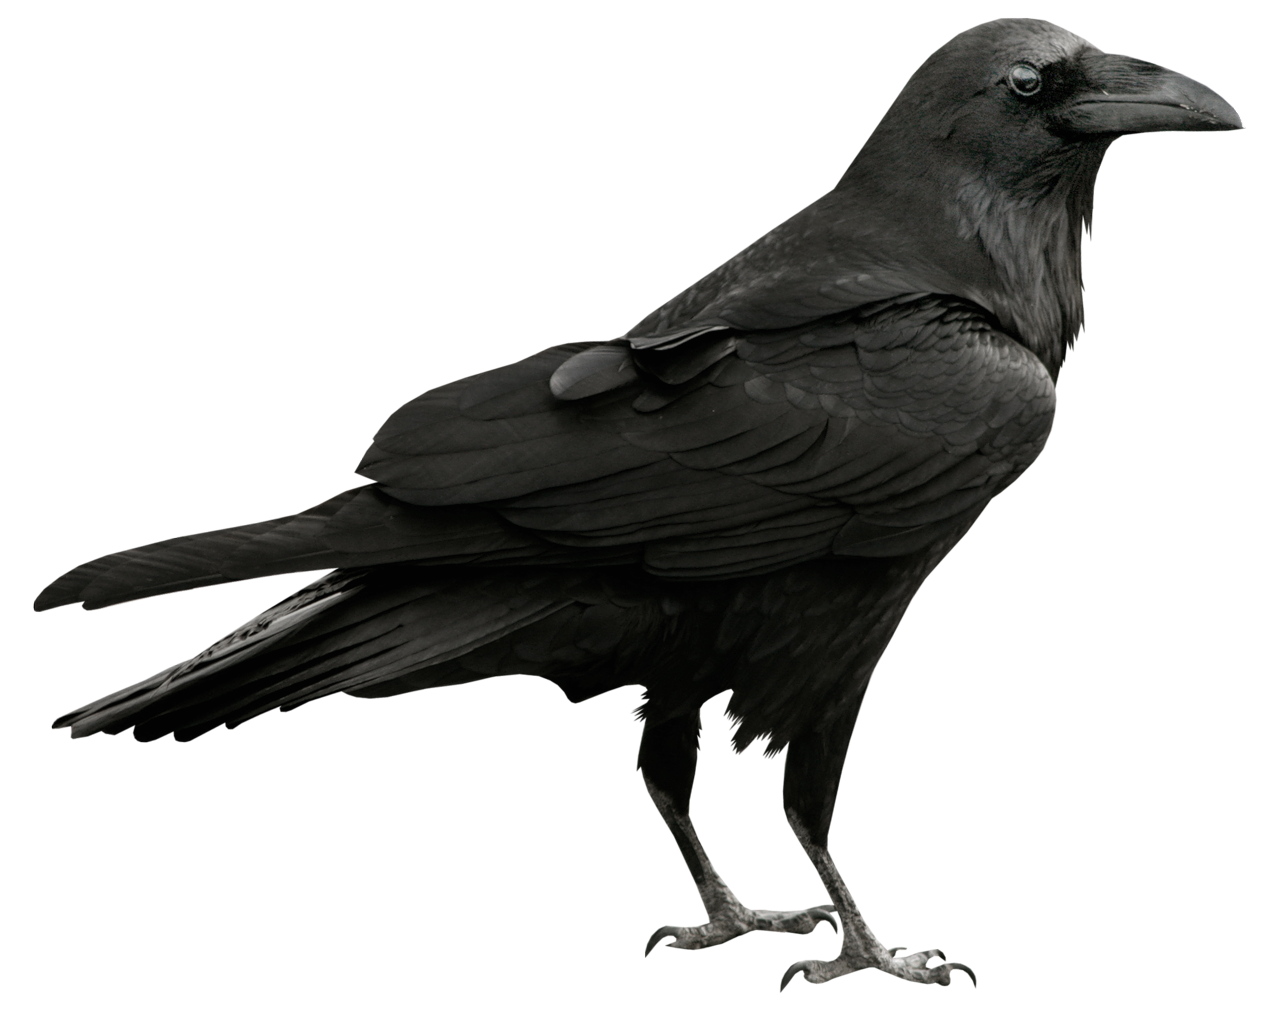 Raven PNG - 21277